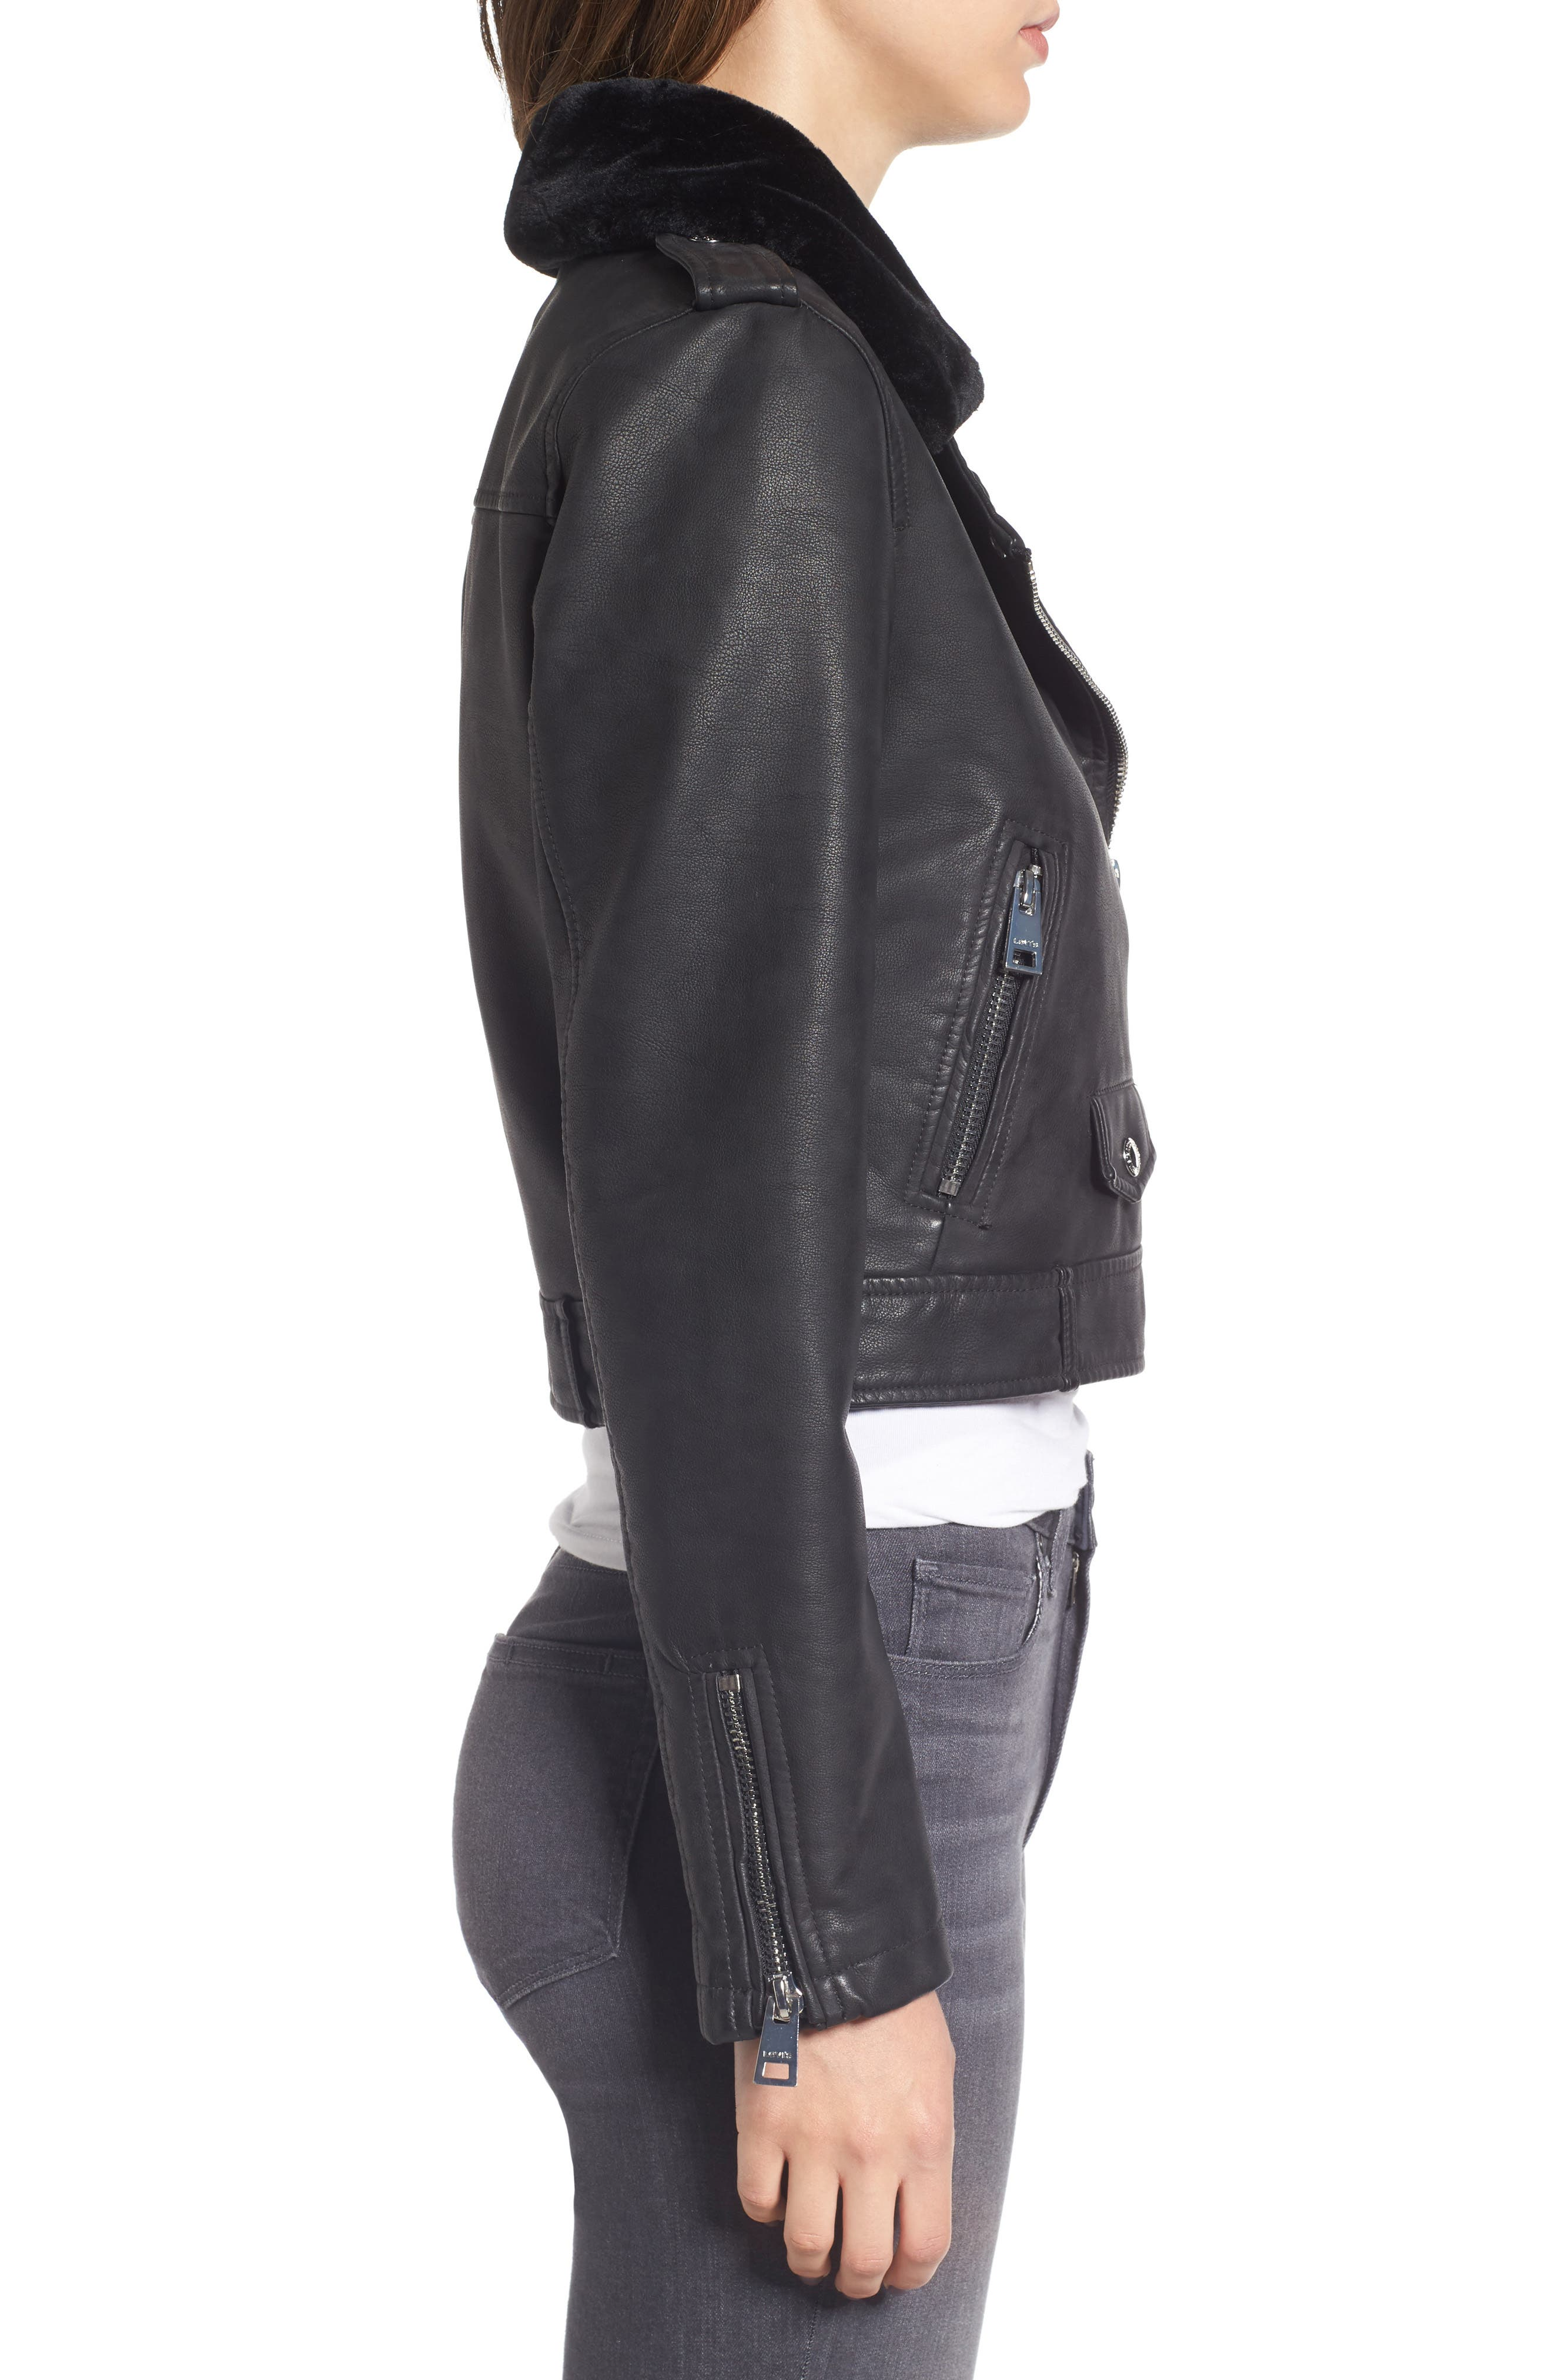 Levis<sup>®</sup> Sherpa Faux Leather Moto Jacket with Faux Fur Collar,                             Alternate thumbnail 3, color,                             Black